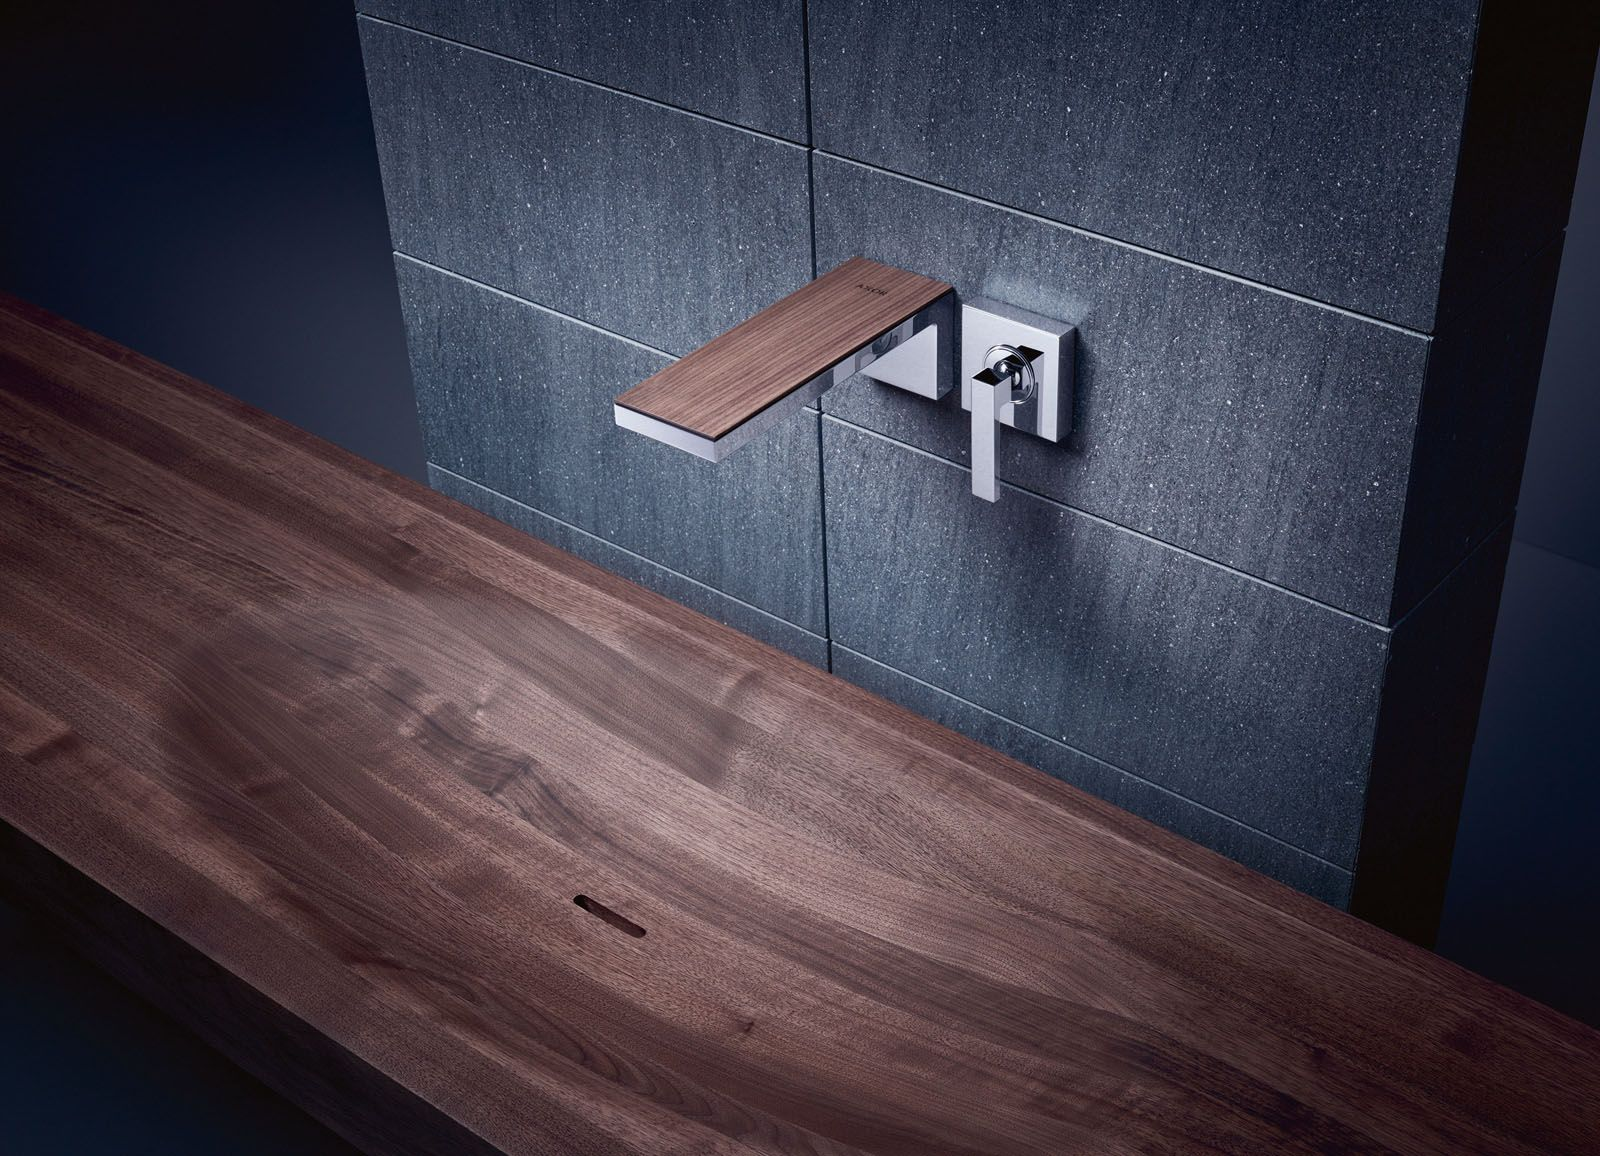 Axor MyEdition wall-mounted faucet, from Hansgrohe